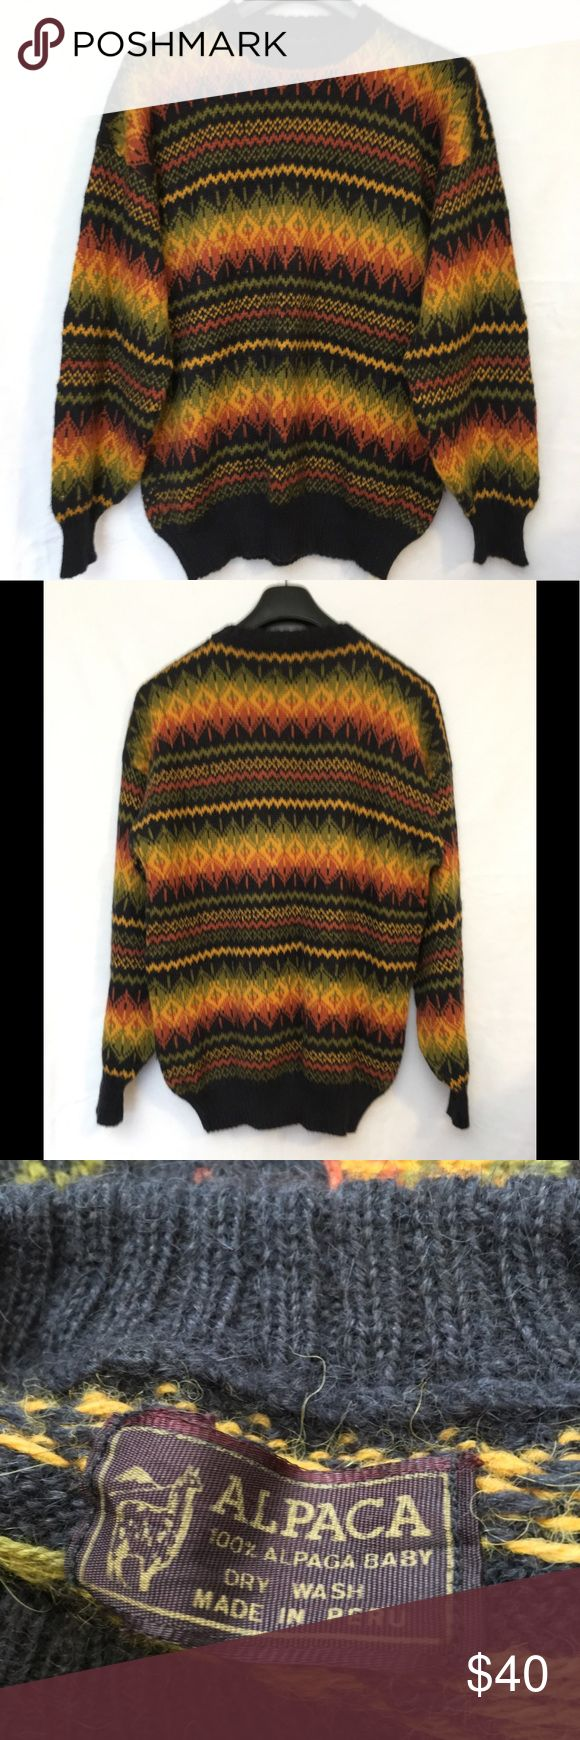 """Alpaca Peruvian Black Knit Patterned Sweater Vintage Alpaca Peruvian Black Yellow Green Knit Patterned Sweater Mens Large  Baby alpaca yarn- incredibly soft! Sweater is in excellent condition with no flaws.  Size LARGE  LENGTH 27.5  SLEEVES 25""""  UNDERARM TO UNDERARM 23""""  Quick shipping! WE SHIP EITHER THE SAME BUSINESS DAY OR NEXT. ORDERS ON WEEKENDS ARE IN MAIL BY MONDAY MORNING. Sweaters Crewneck"""